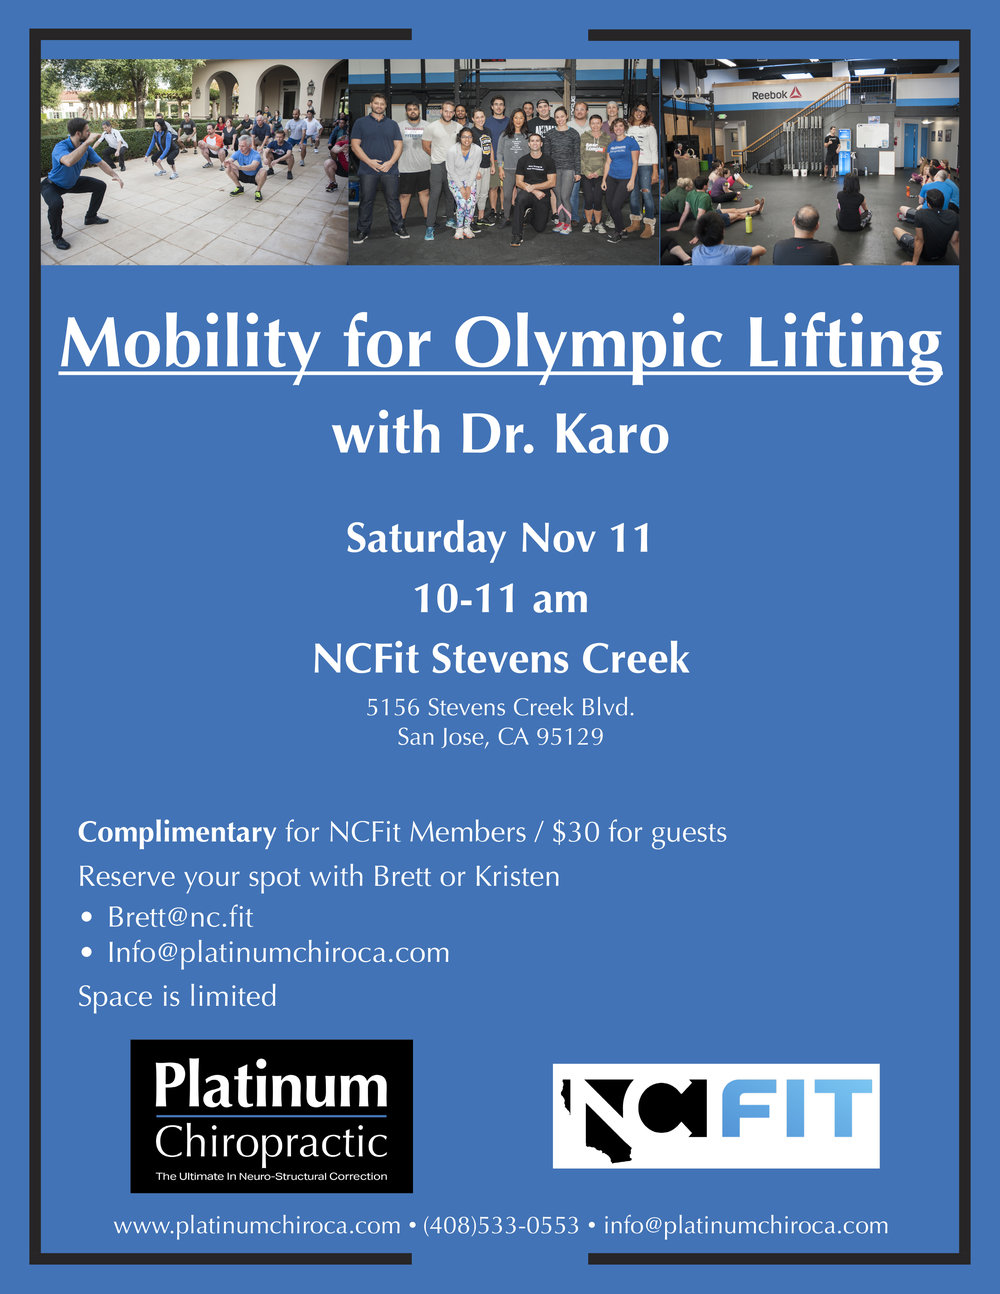 Join us this Saturday November 11 at NCFit Steven's Creek Blvd. for Dr. Karo's Mobility for Olympic Lifting event. RSVP to reserve your spot.